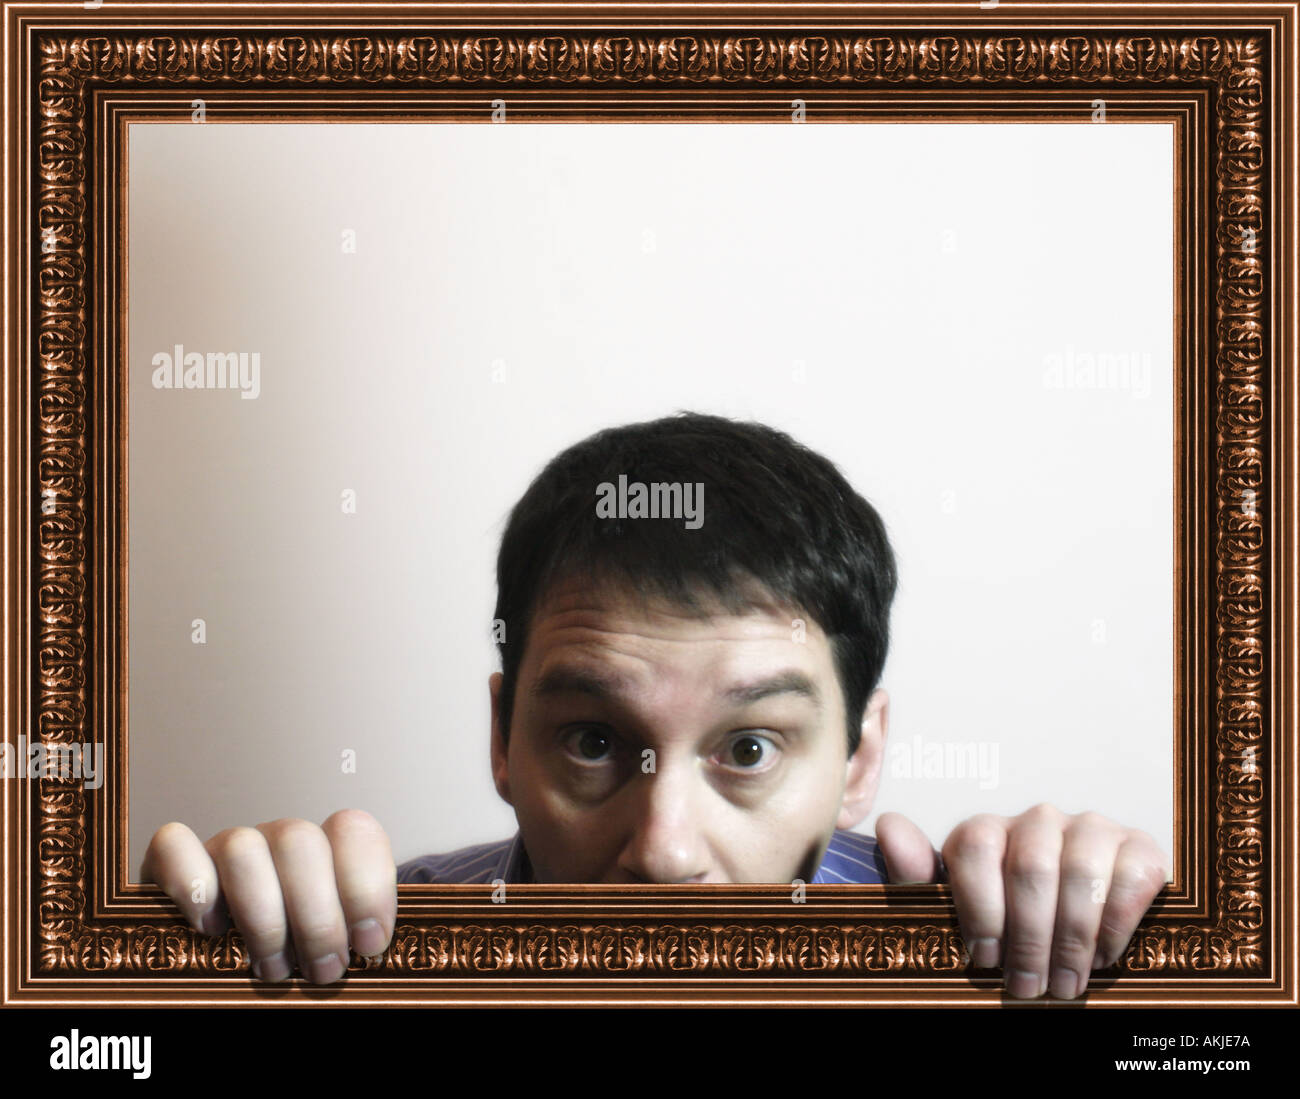 Composite with man hiding from within a picture frame - Stock Image